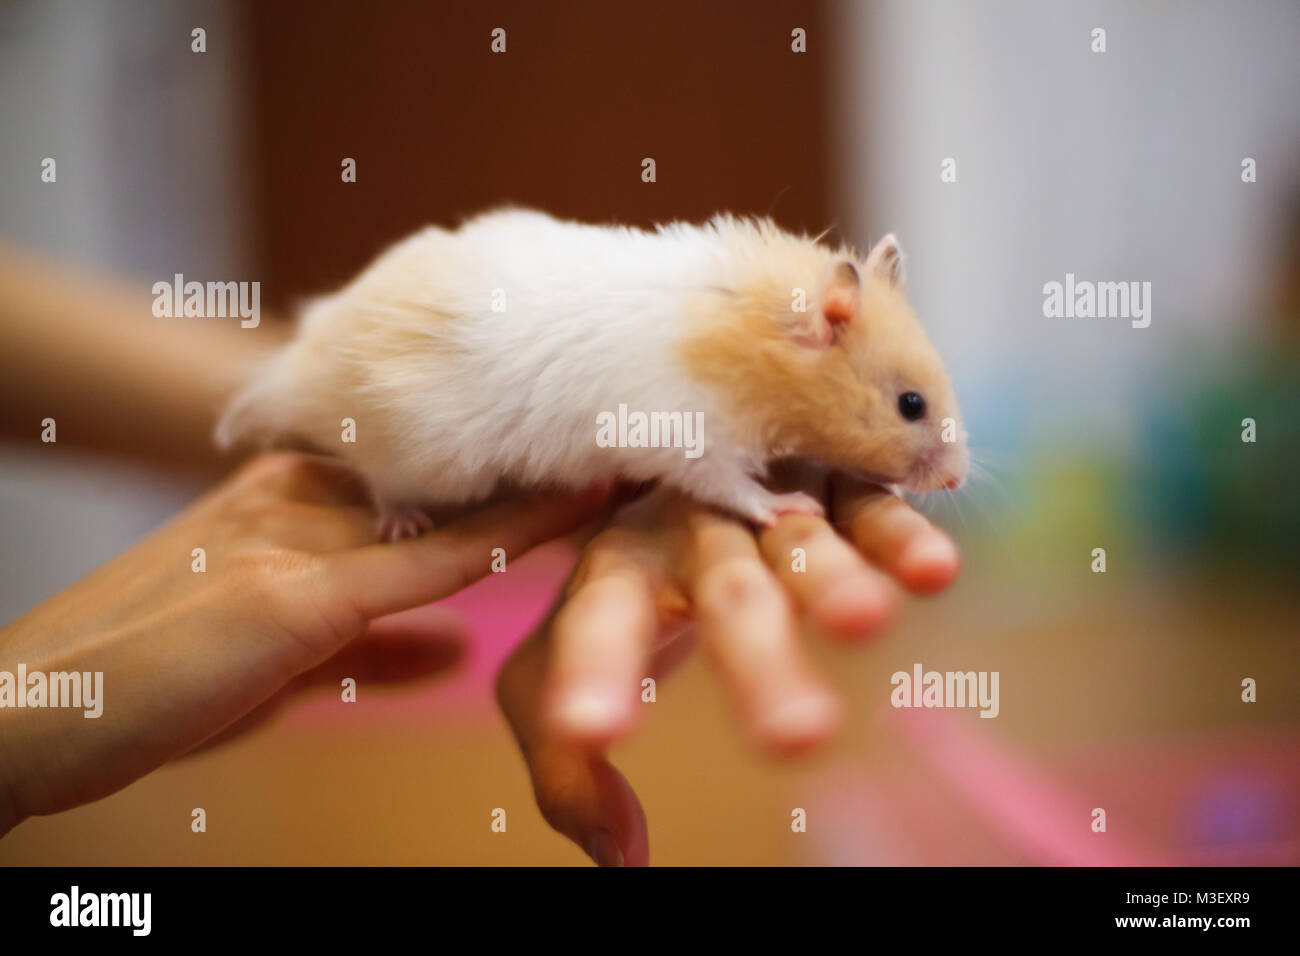 Cute Orange and White Syrian or Golden Hamster (Mesocricetus auratus) climbing on girl's hand. Taking Care, - Stock Image